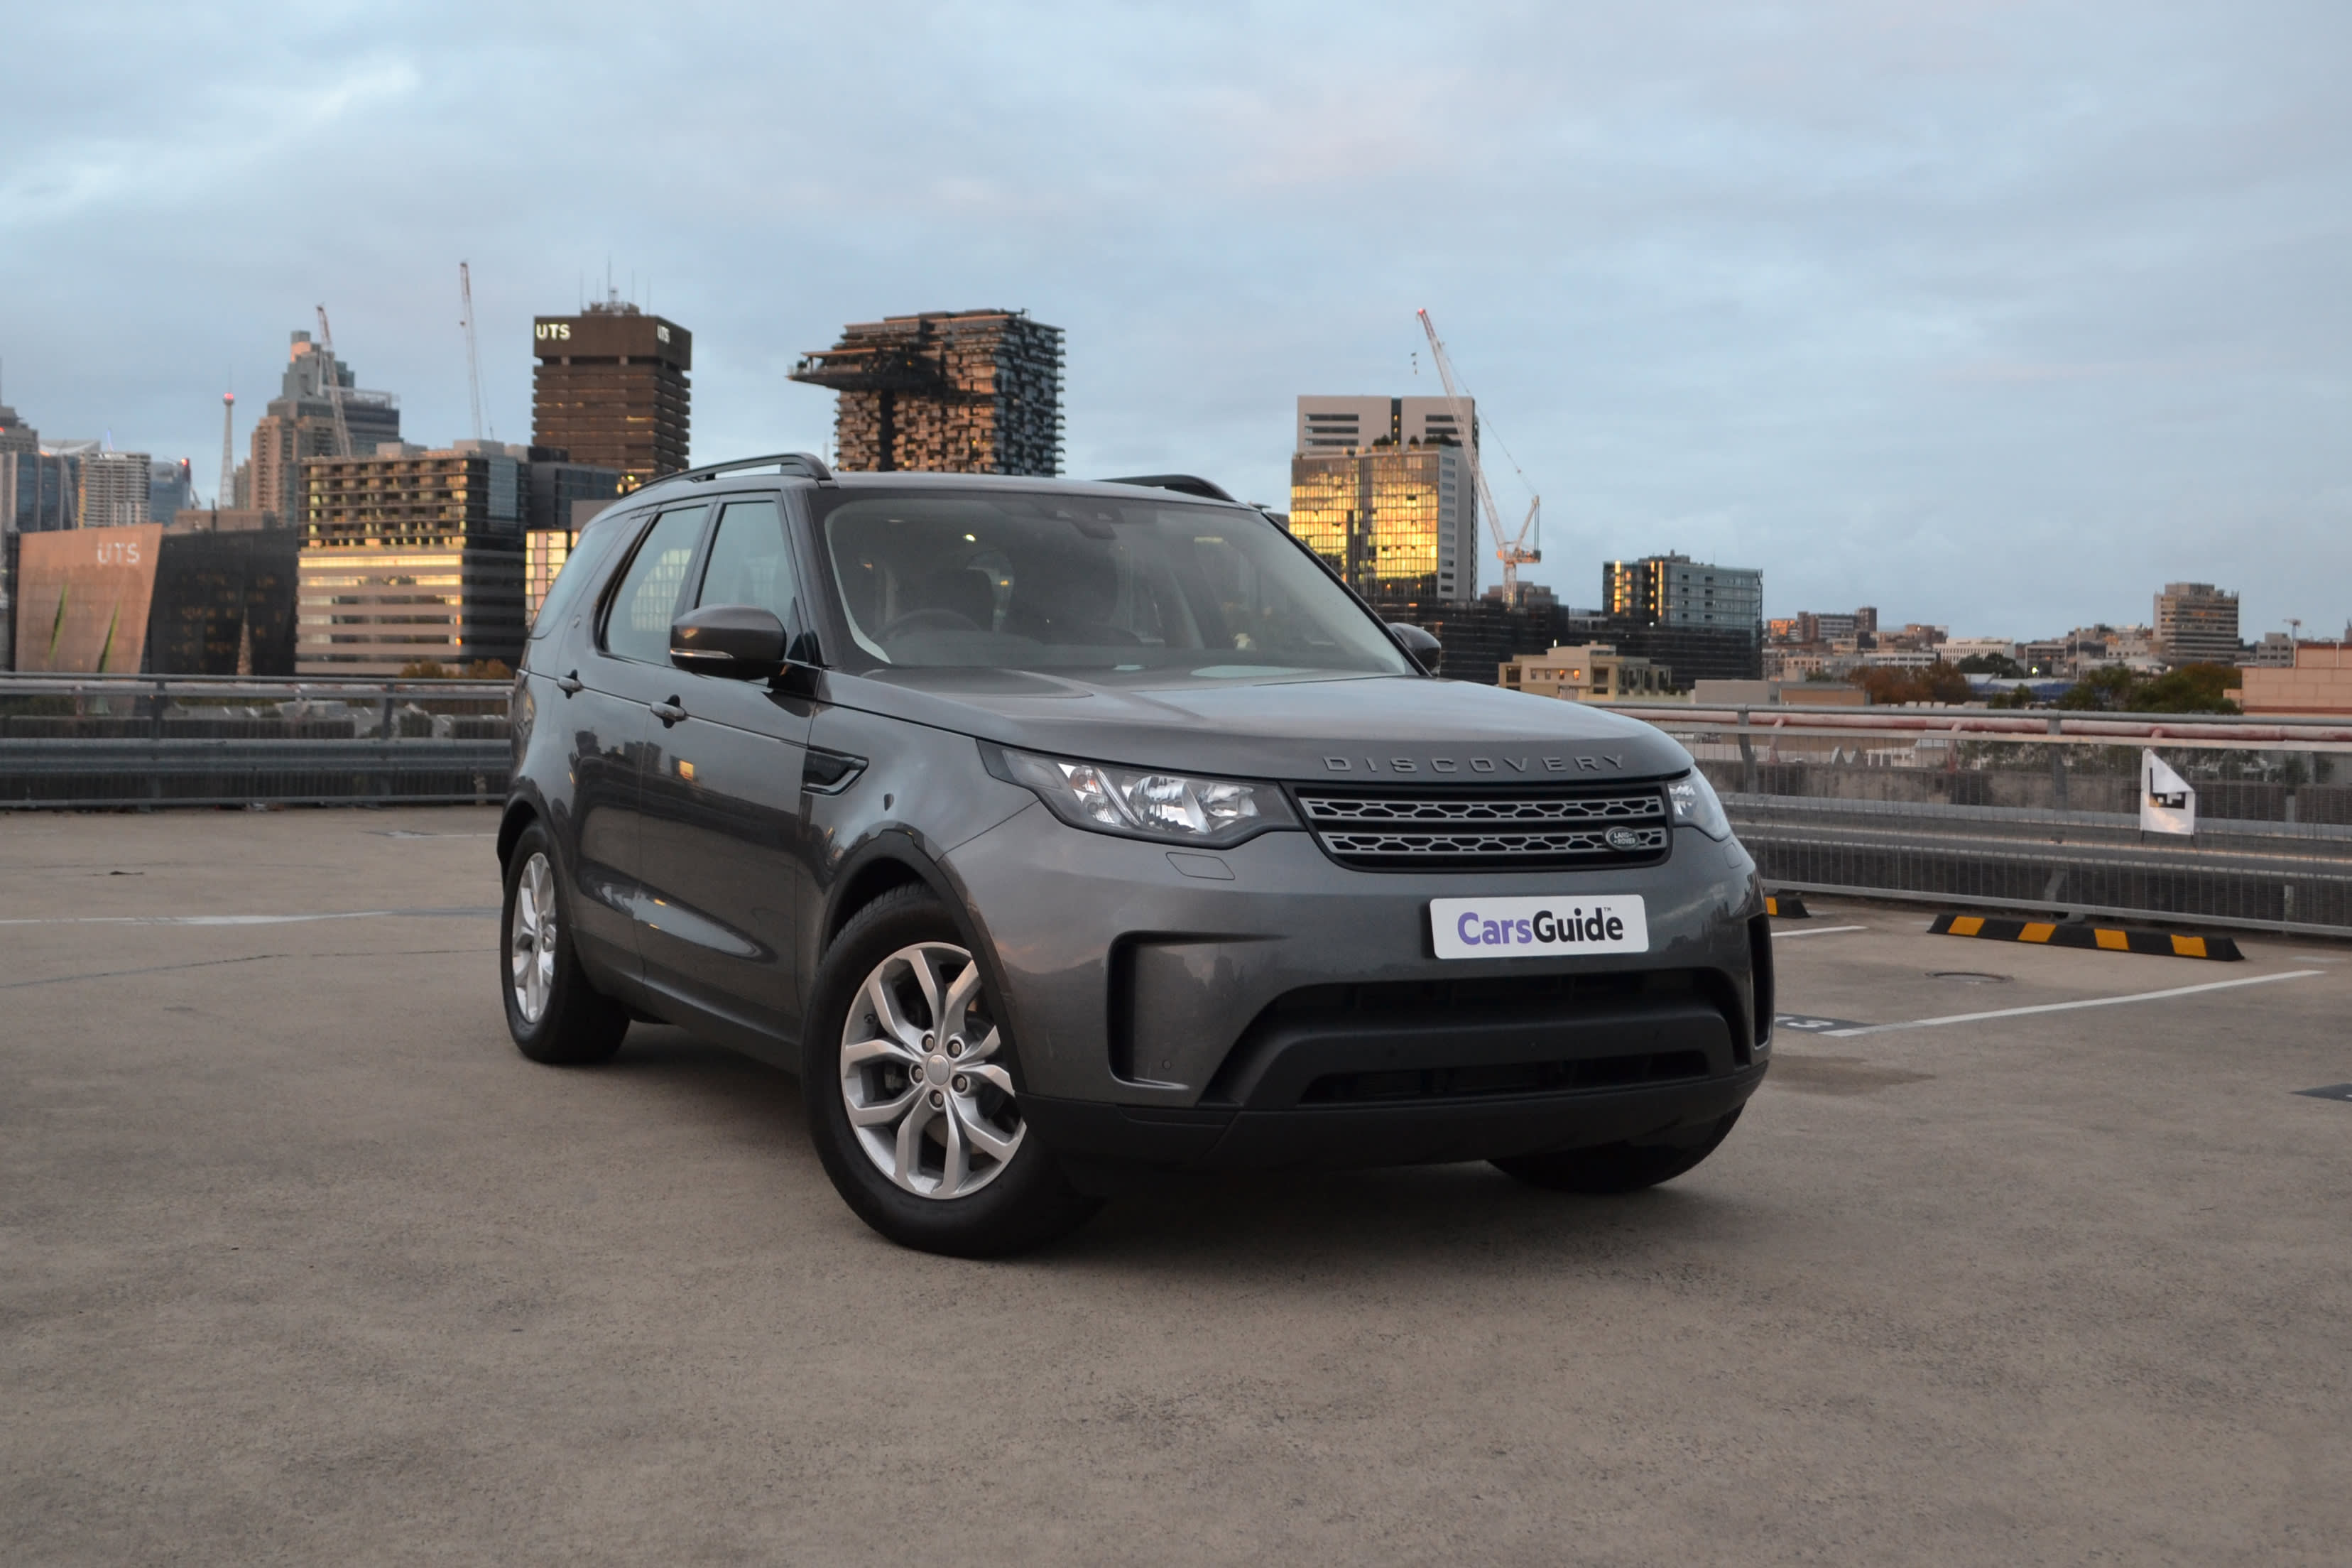 Land Rover Discovery Review S CarsGuide - Alpina discovery review